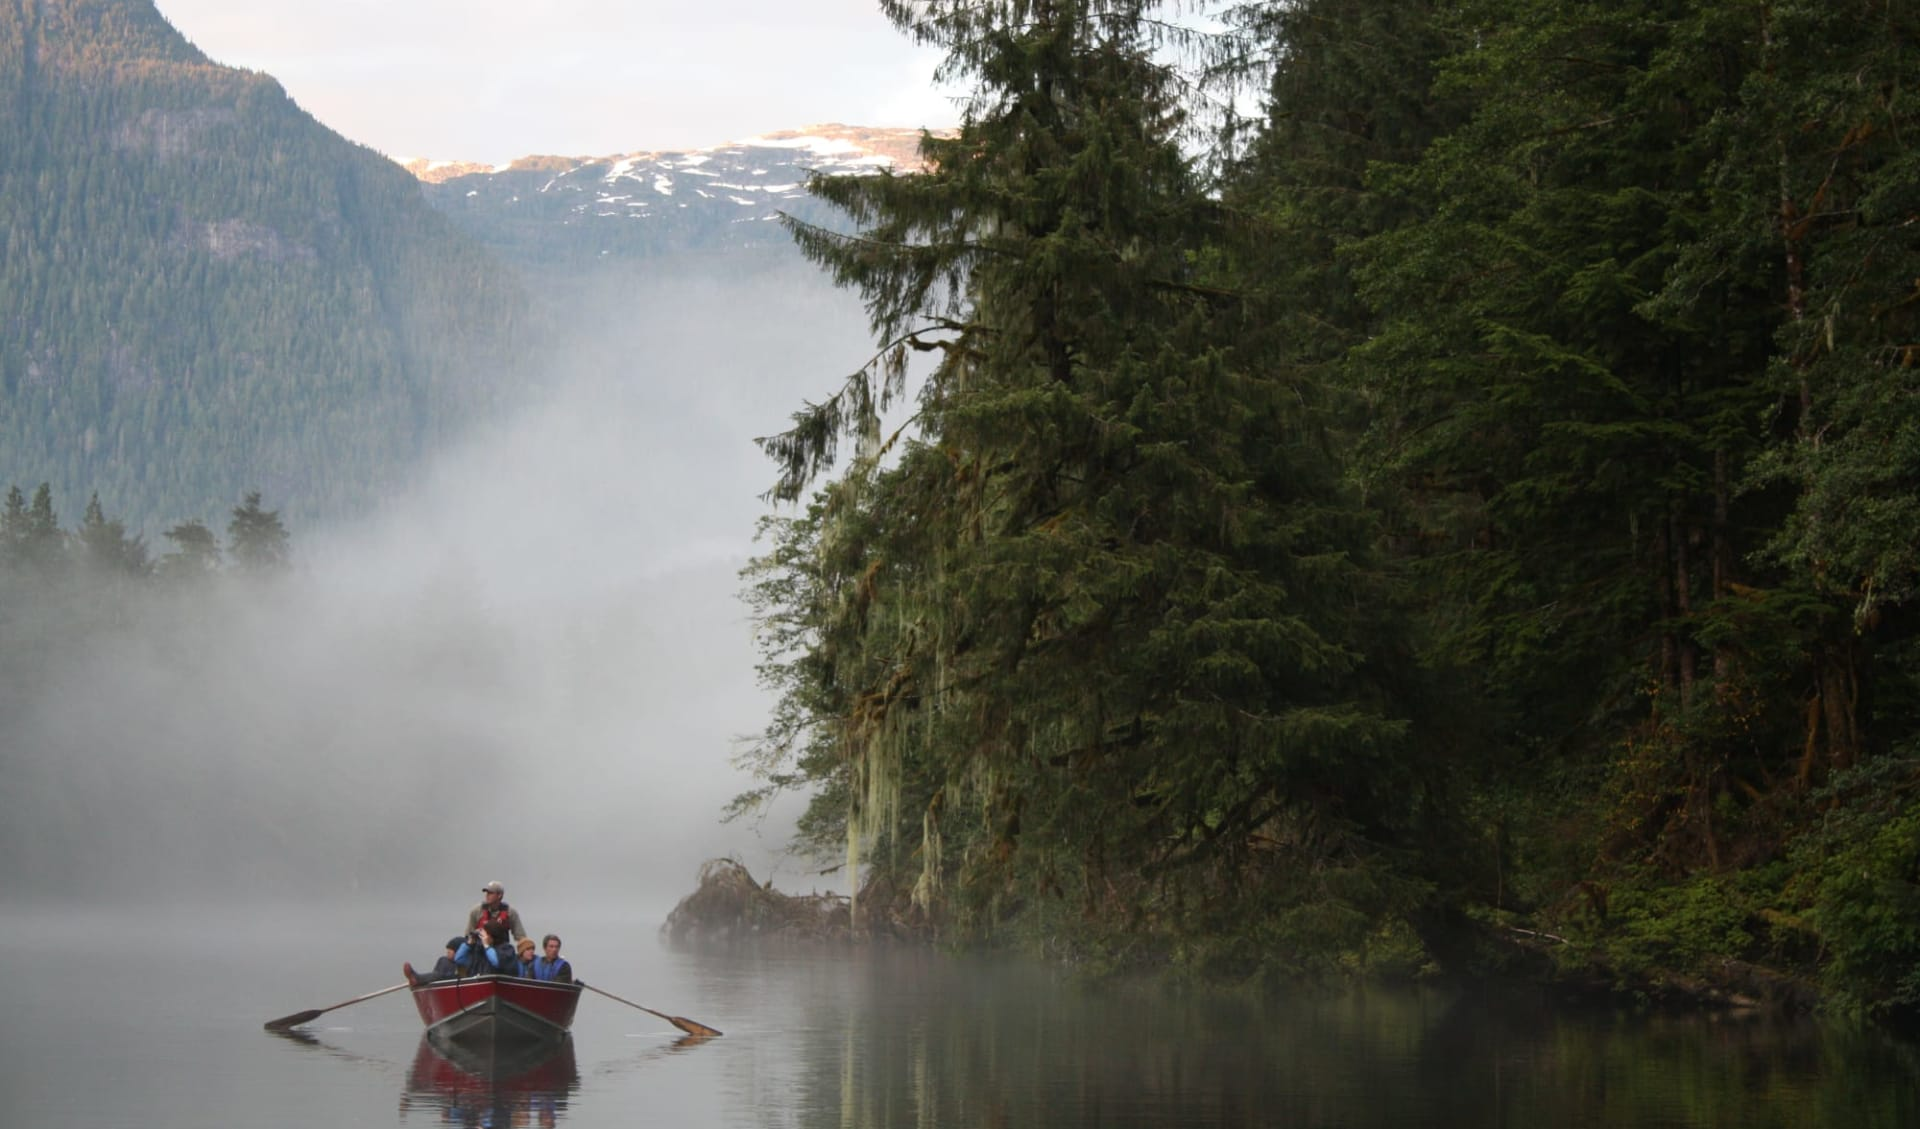 Bärenbeobachtung Great Bear Lodge 7 Tage ab Port Hardy: activities: Great Bear Lodge - Bootstour